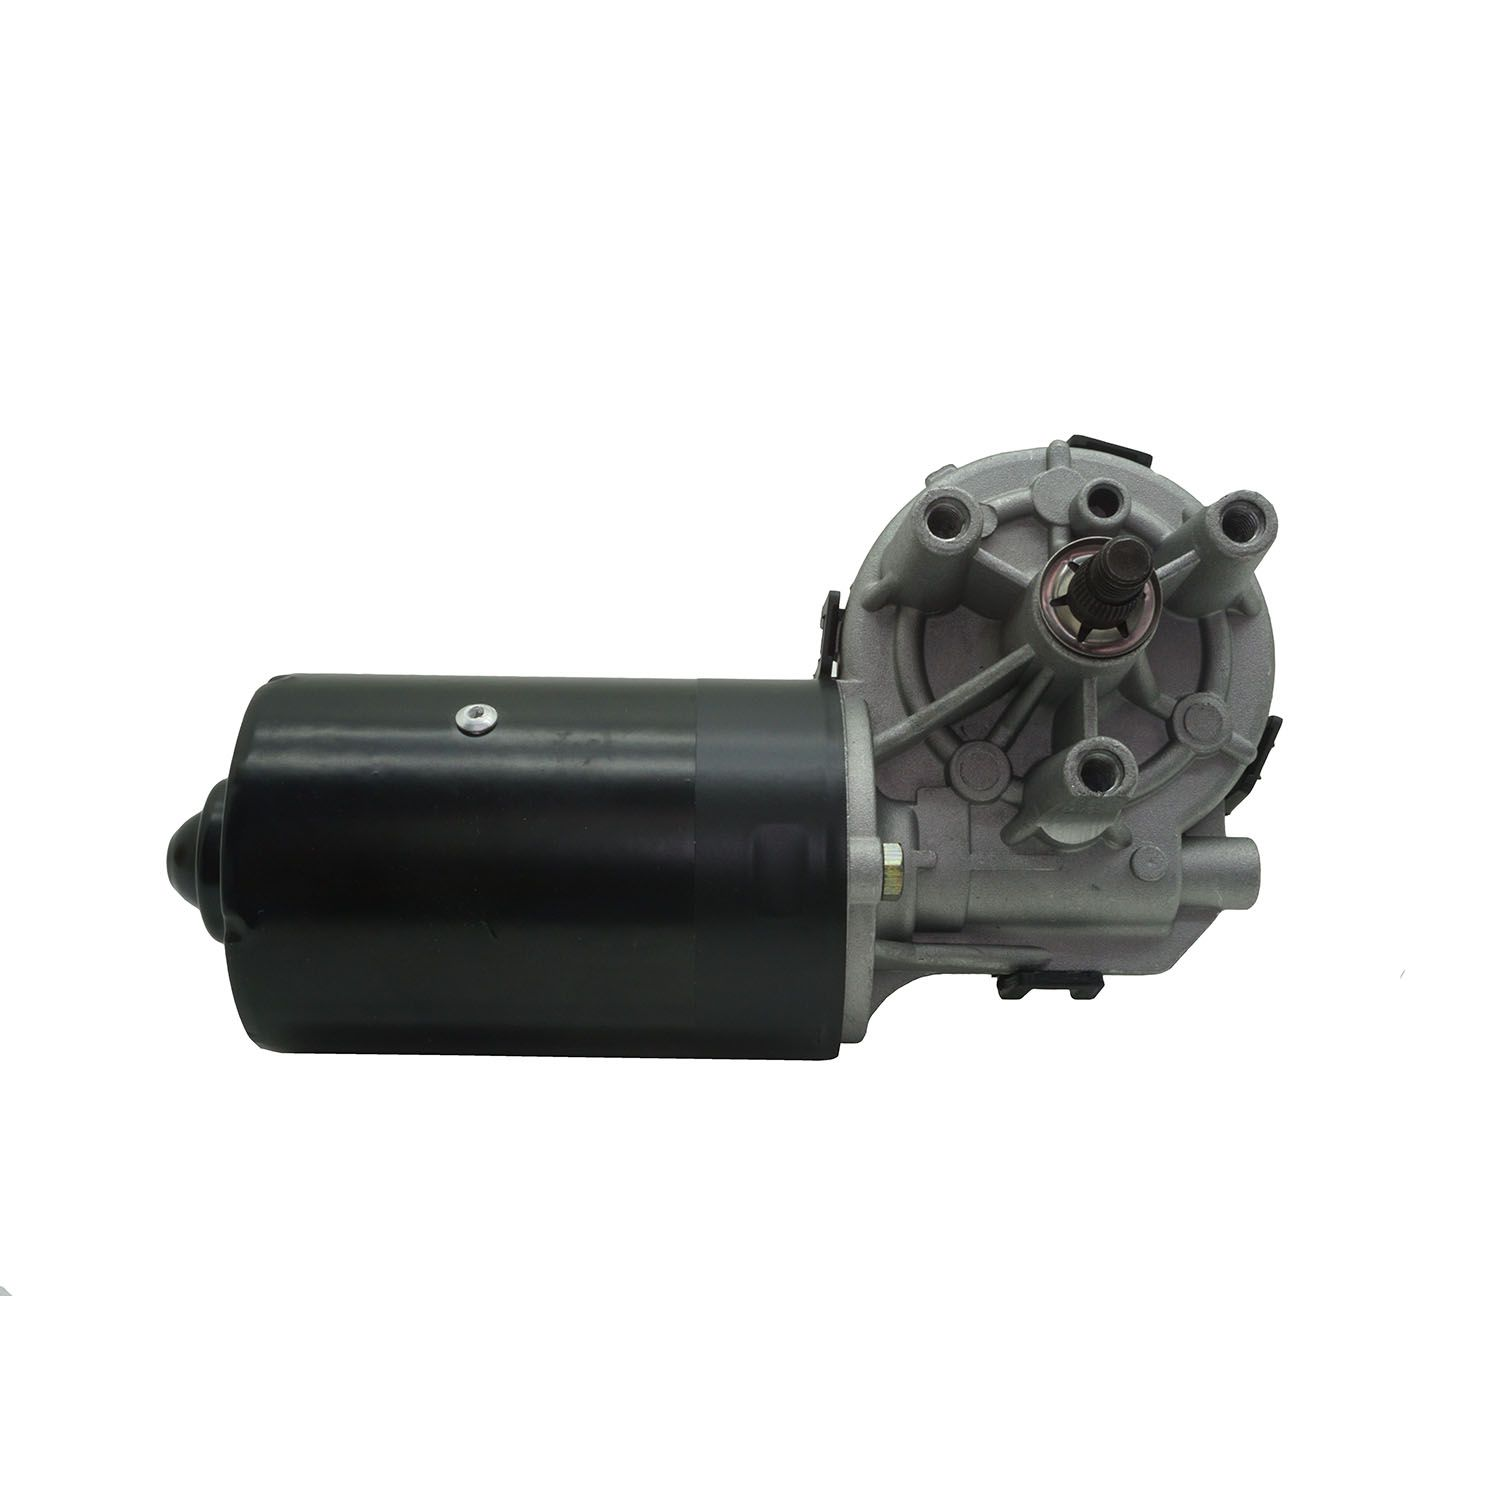 Motor do Limpador Ford KA - 12 V